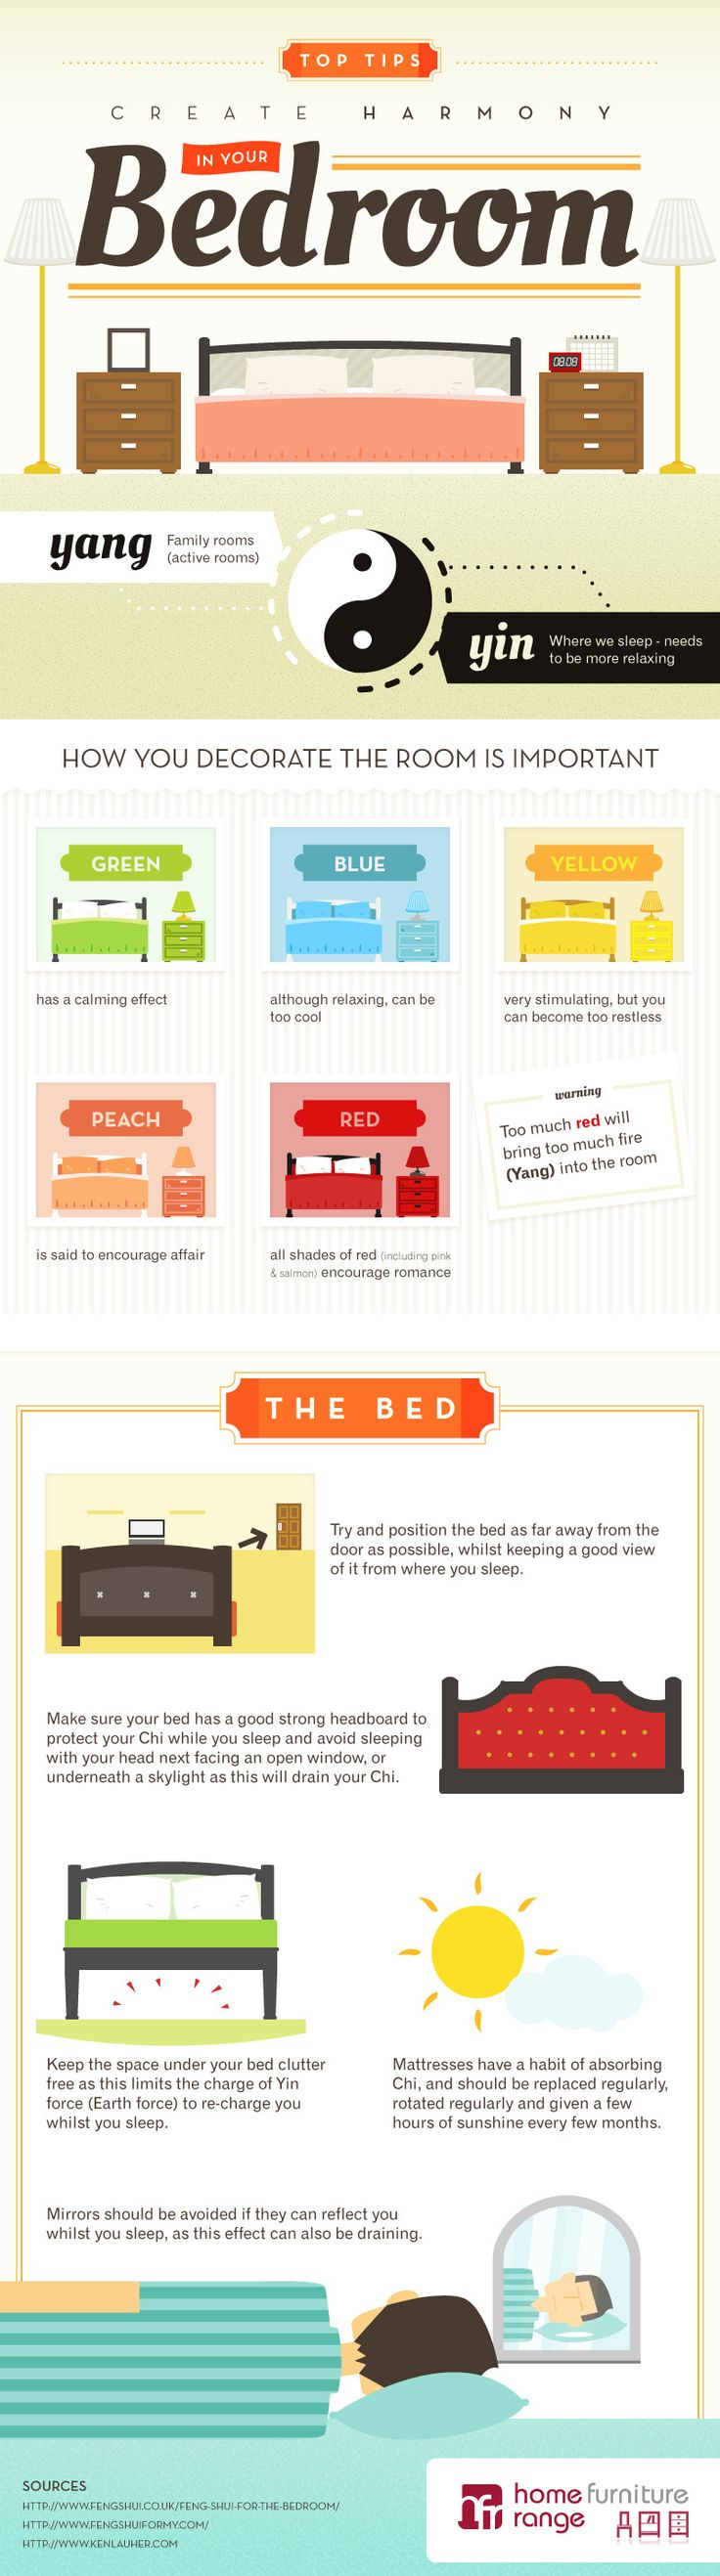 tips to feng shui in your bedroom feng shui bedroomdecor ideas. Interior Design Ideas. Home Design Ideas